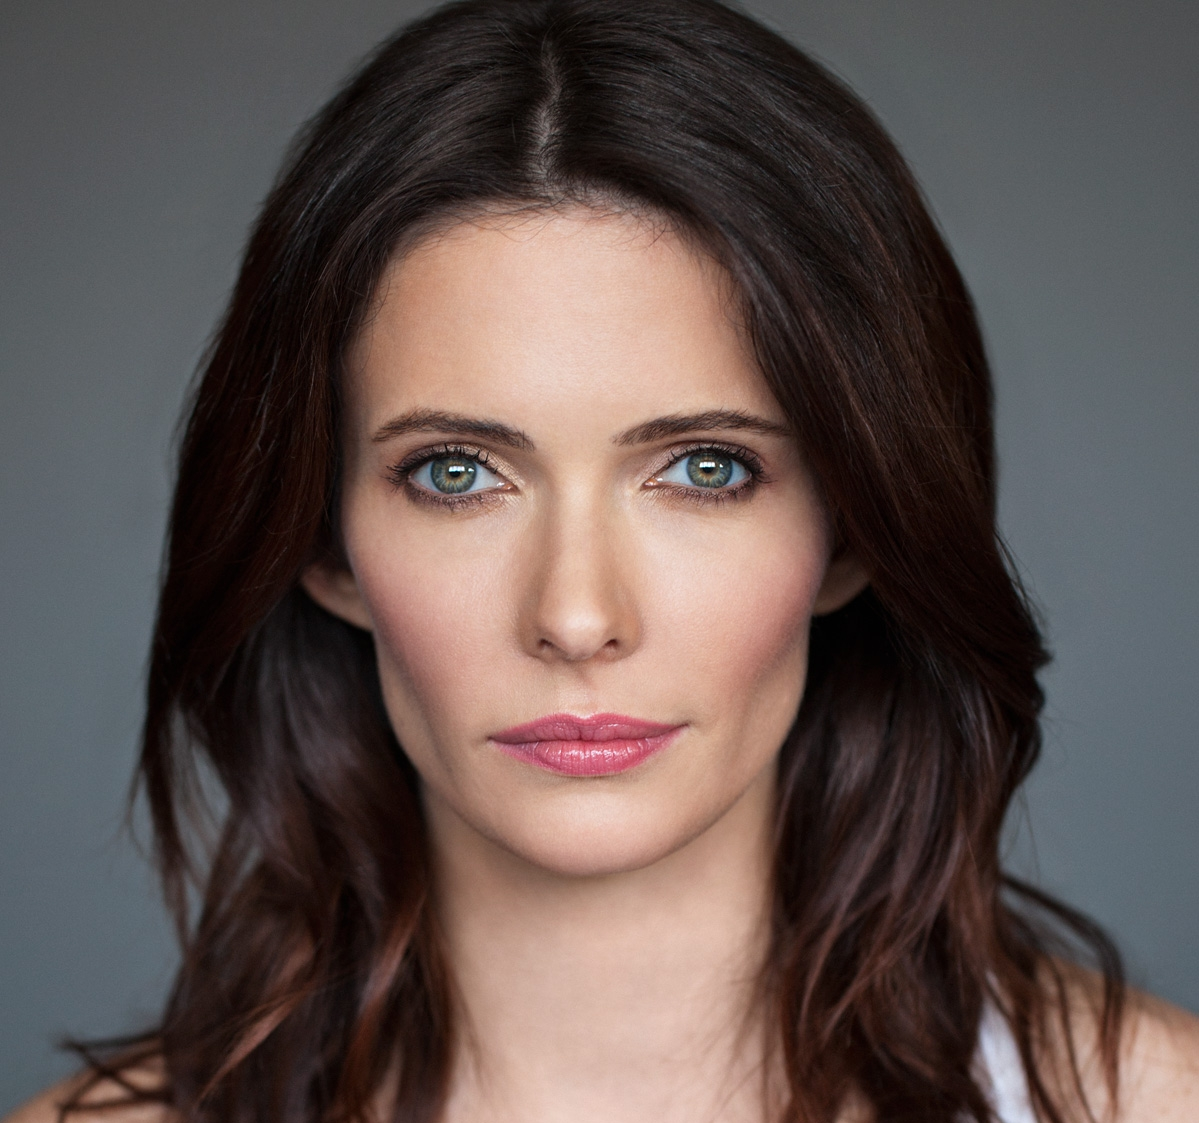 Bitsie Tulloch nude (84 fotos) Tits, YouTube, butt